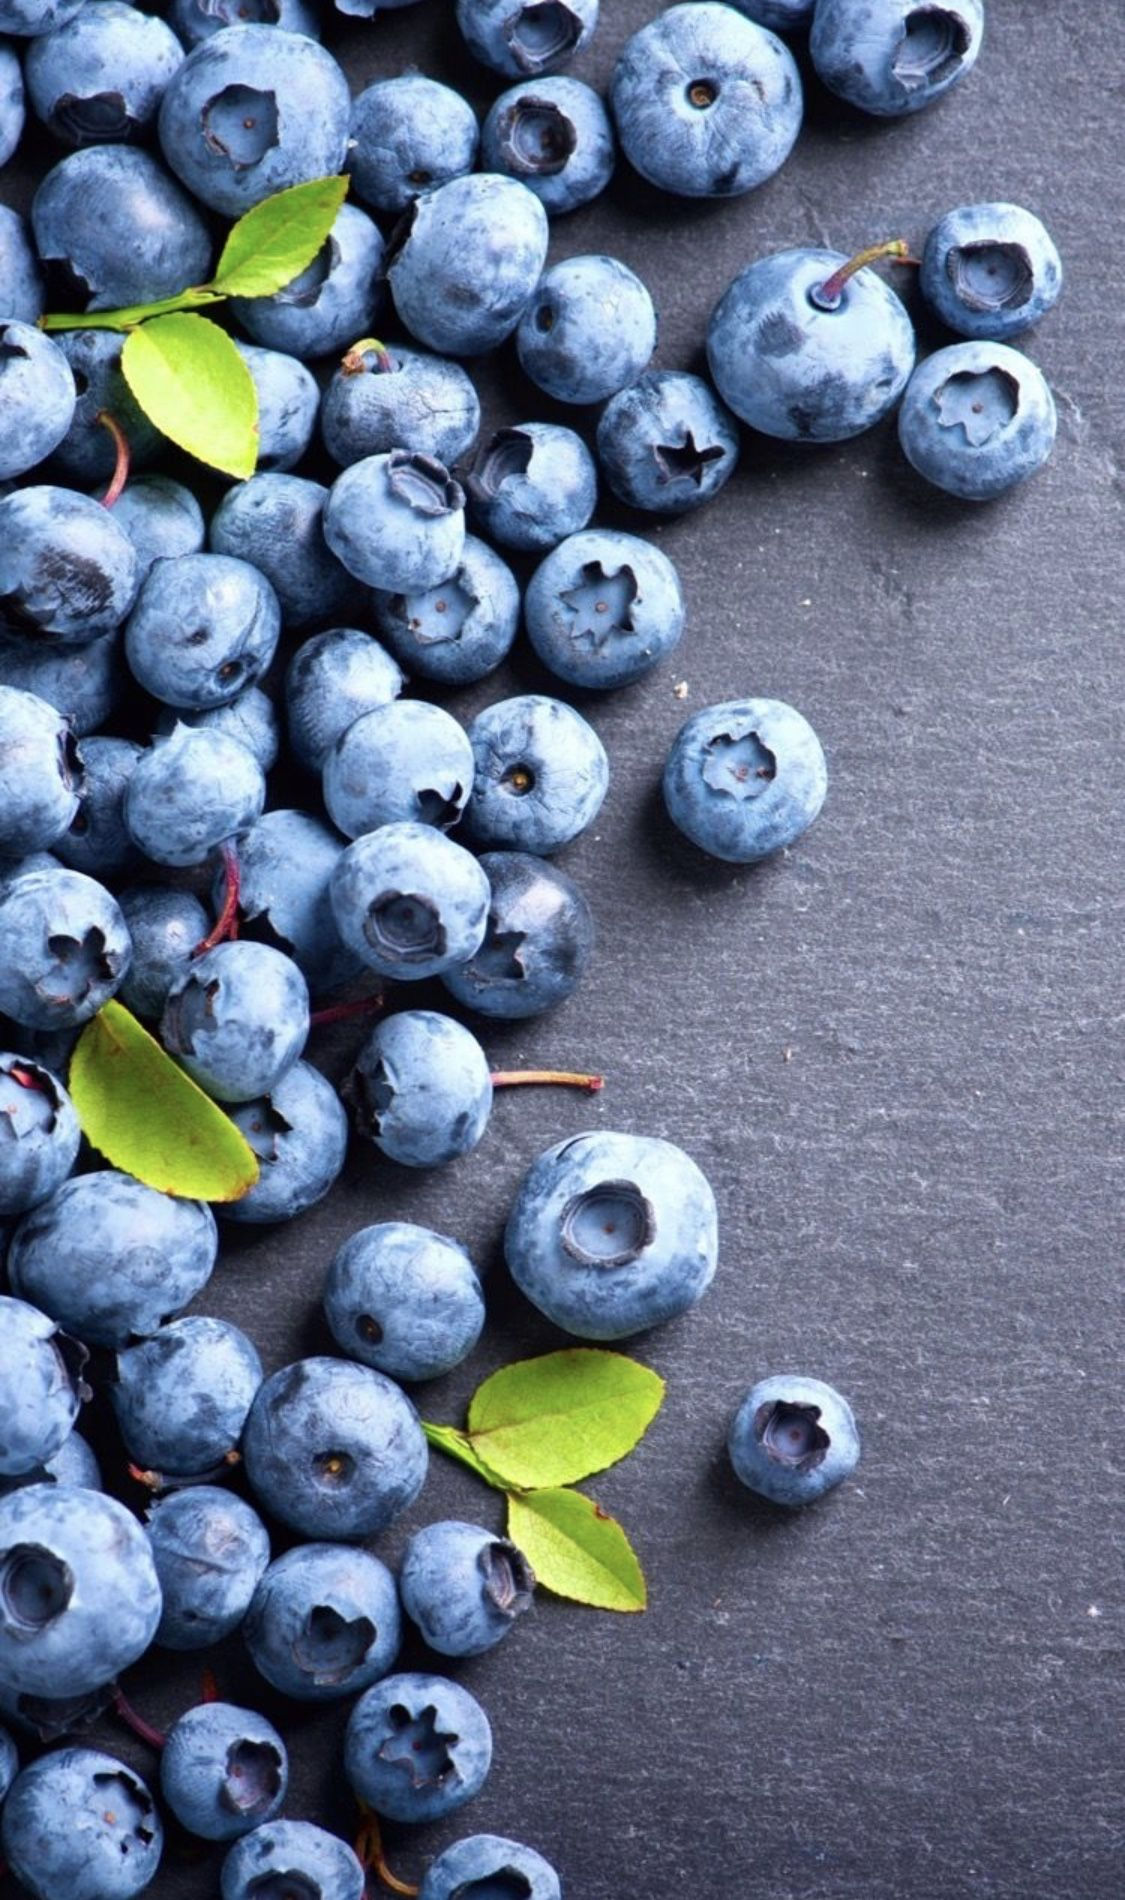 Pin By Petit Fil Bleu On Wallpapers Berries Photography Food Wallpaper Fruit Photography